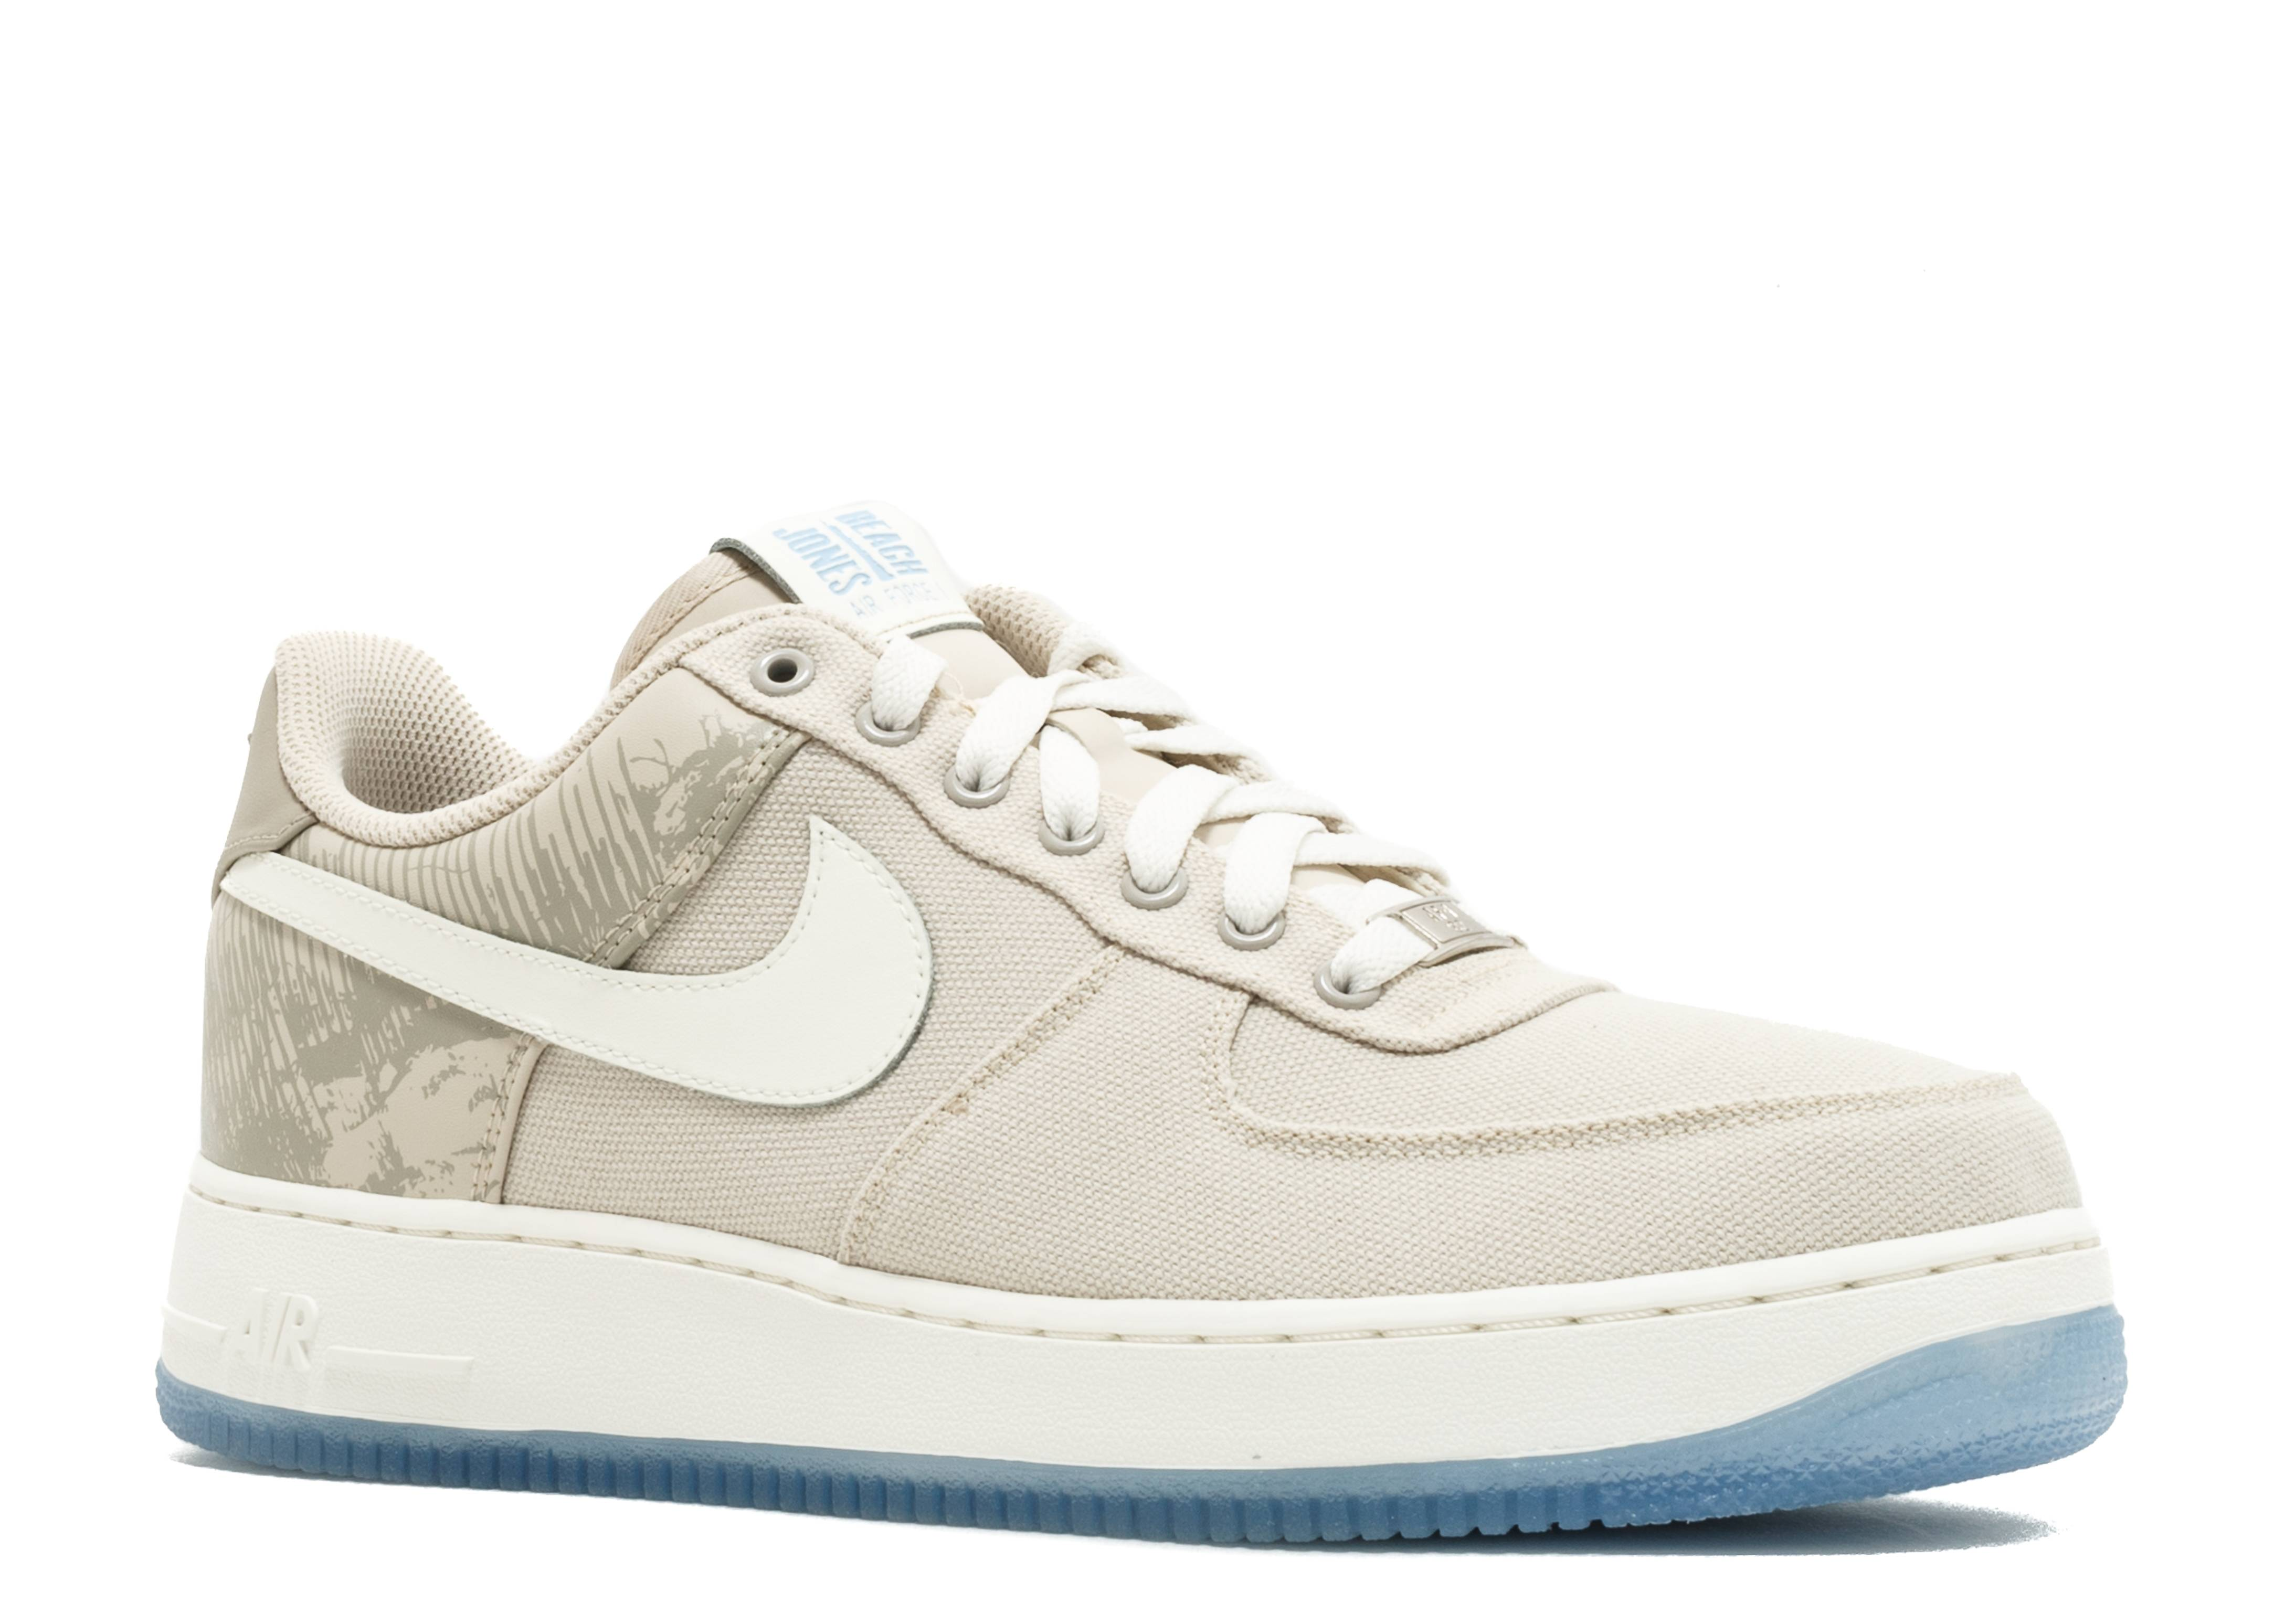 low priced 32378 53f4d Nike Air Force 1 Low Retro